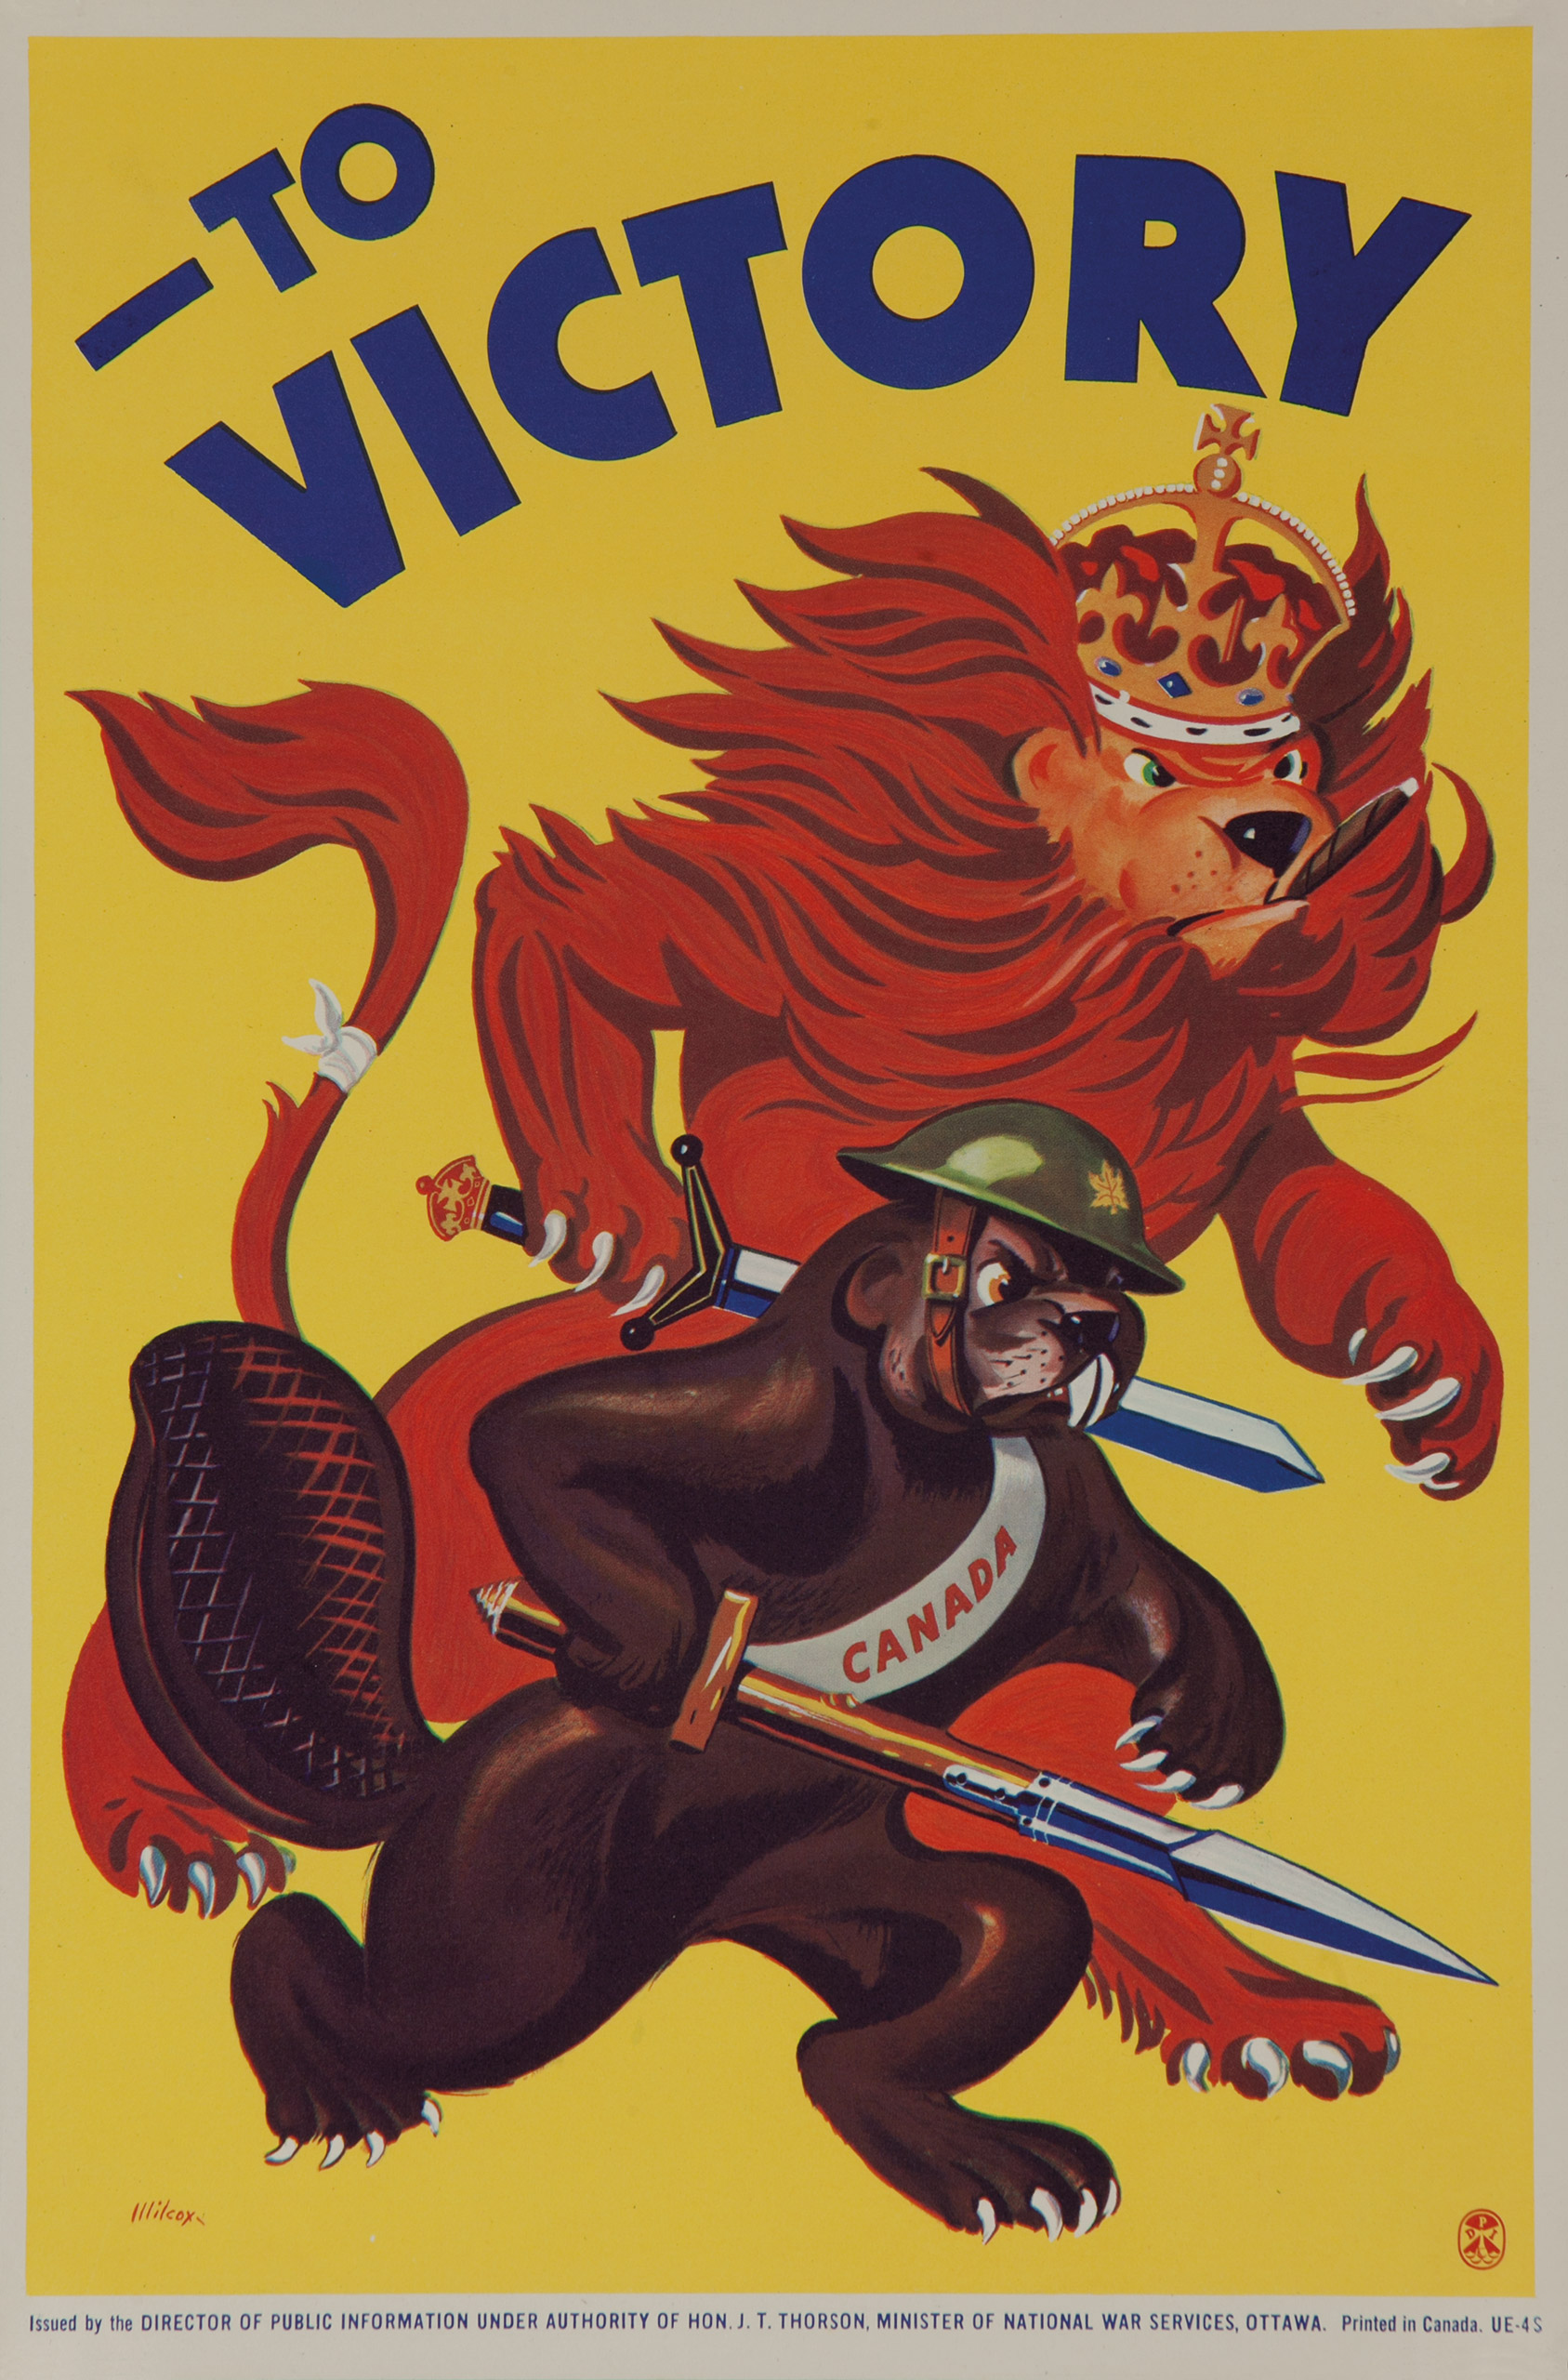 To Victory, issue by the director of Public Information, under authority of Hon. J.T. Thorson, Minister of National War Services, Ottawa, Canada, ca. 1942.